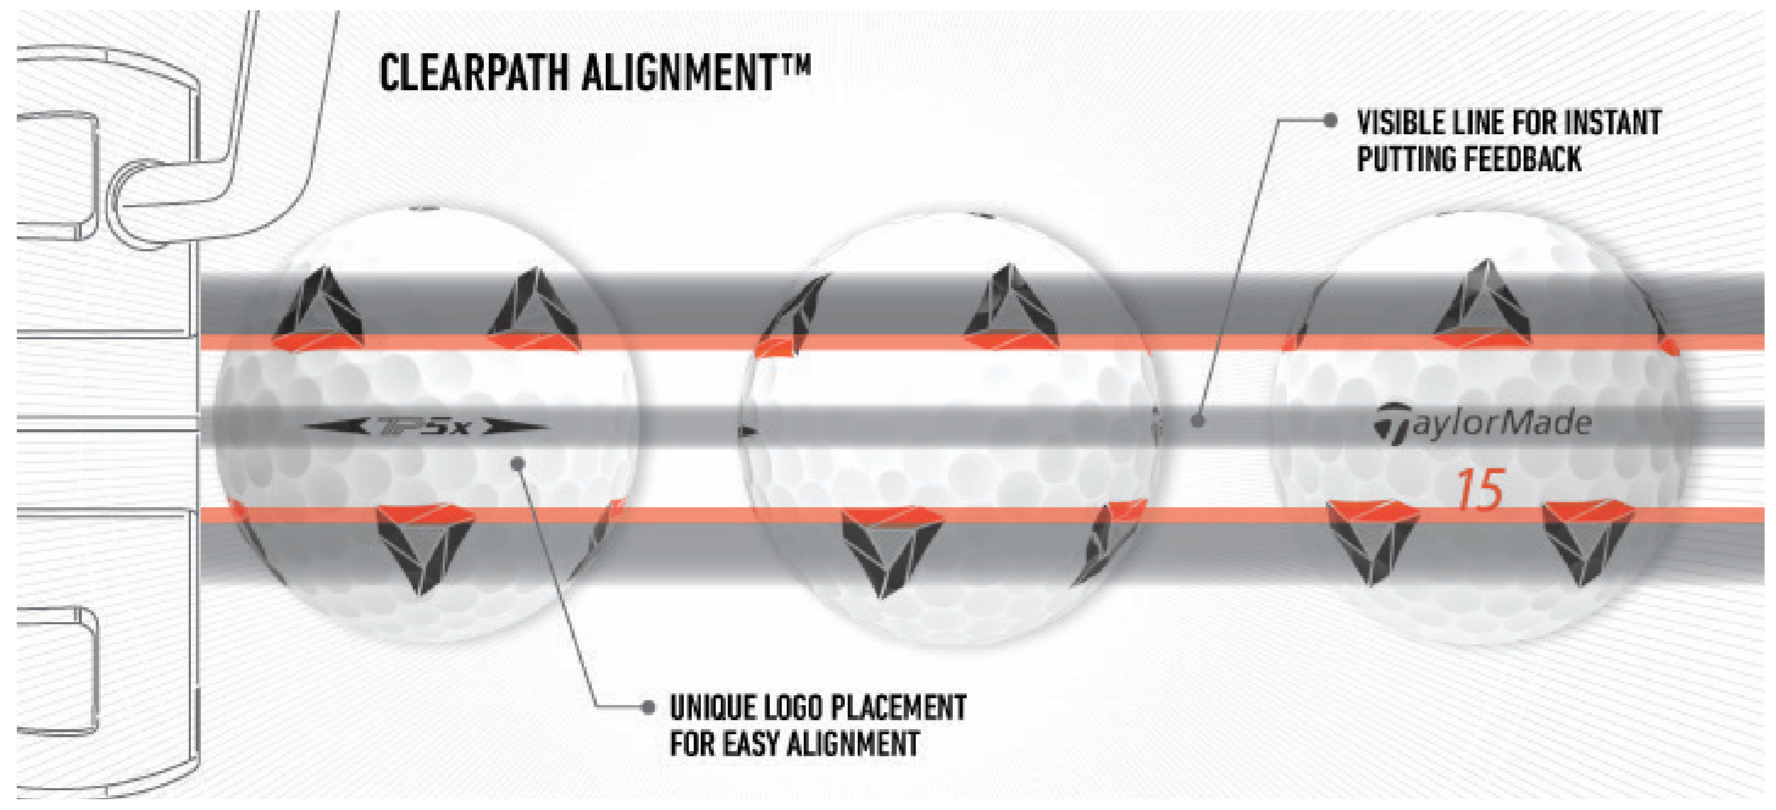 TaylorMade tp5 and tp5x pix golf balls tech image - clearpath alignment